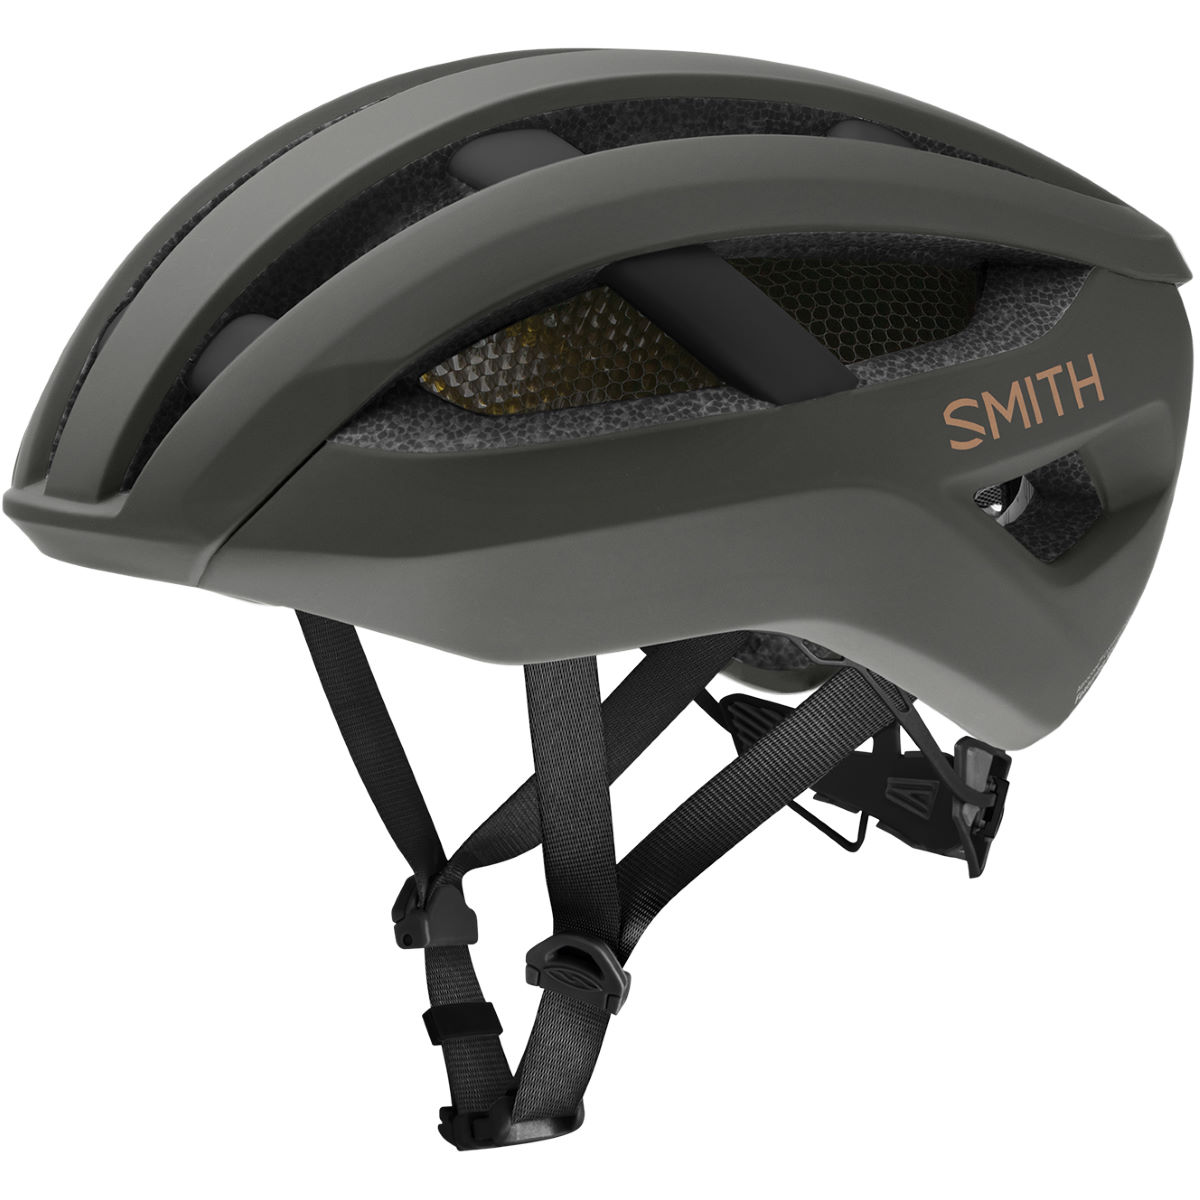 Image of Casque Smith Network MIPS - S Matte Gravy | Casques